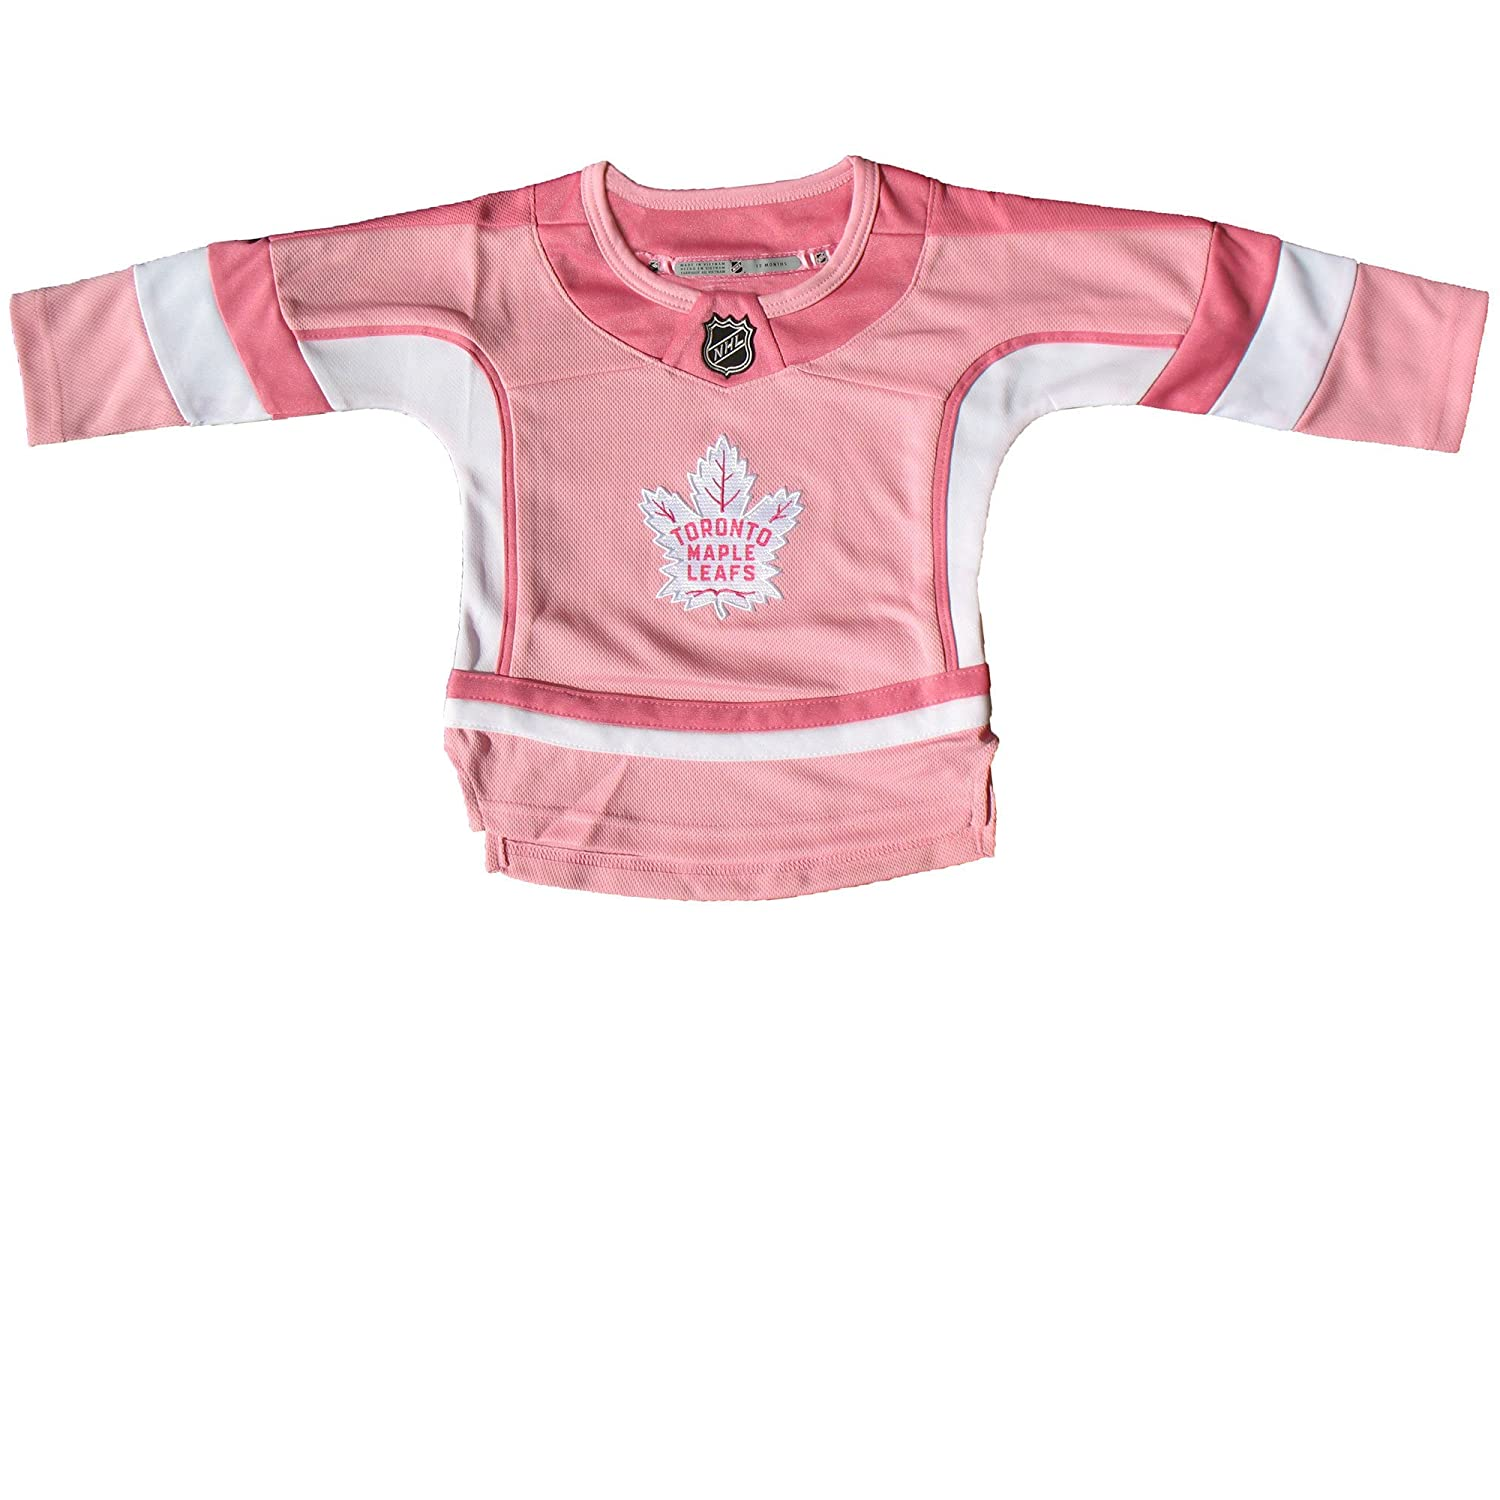 Toronto Maple Leafs Toddler Girls Pink Fashion Jersey Outerstuff